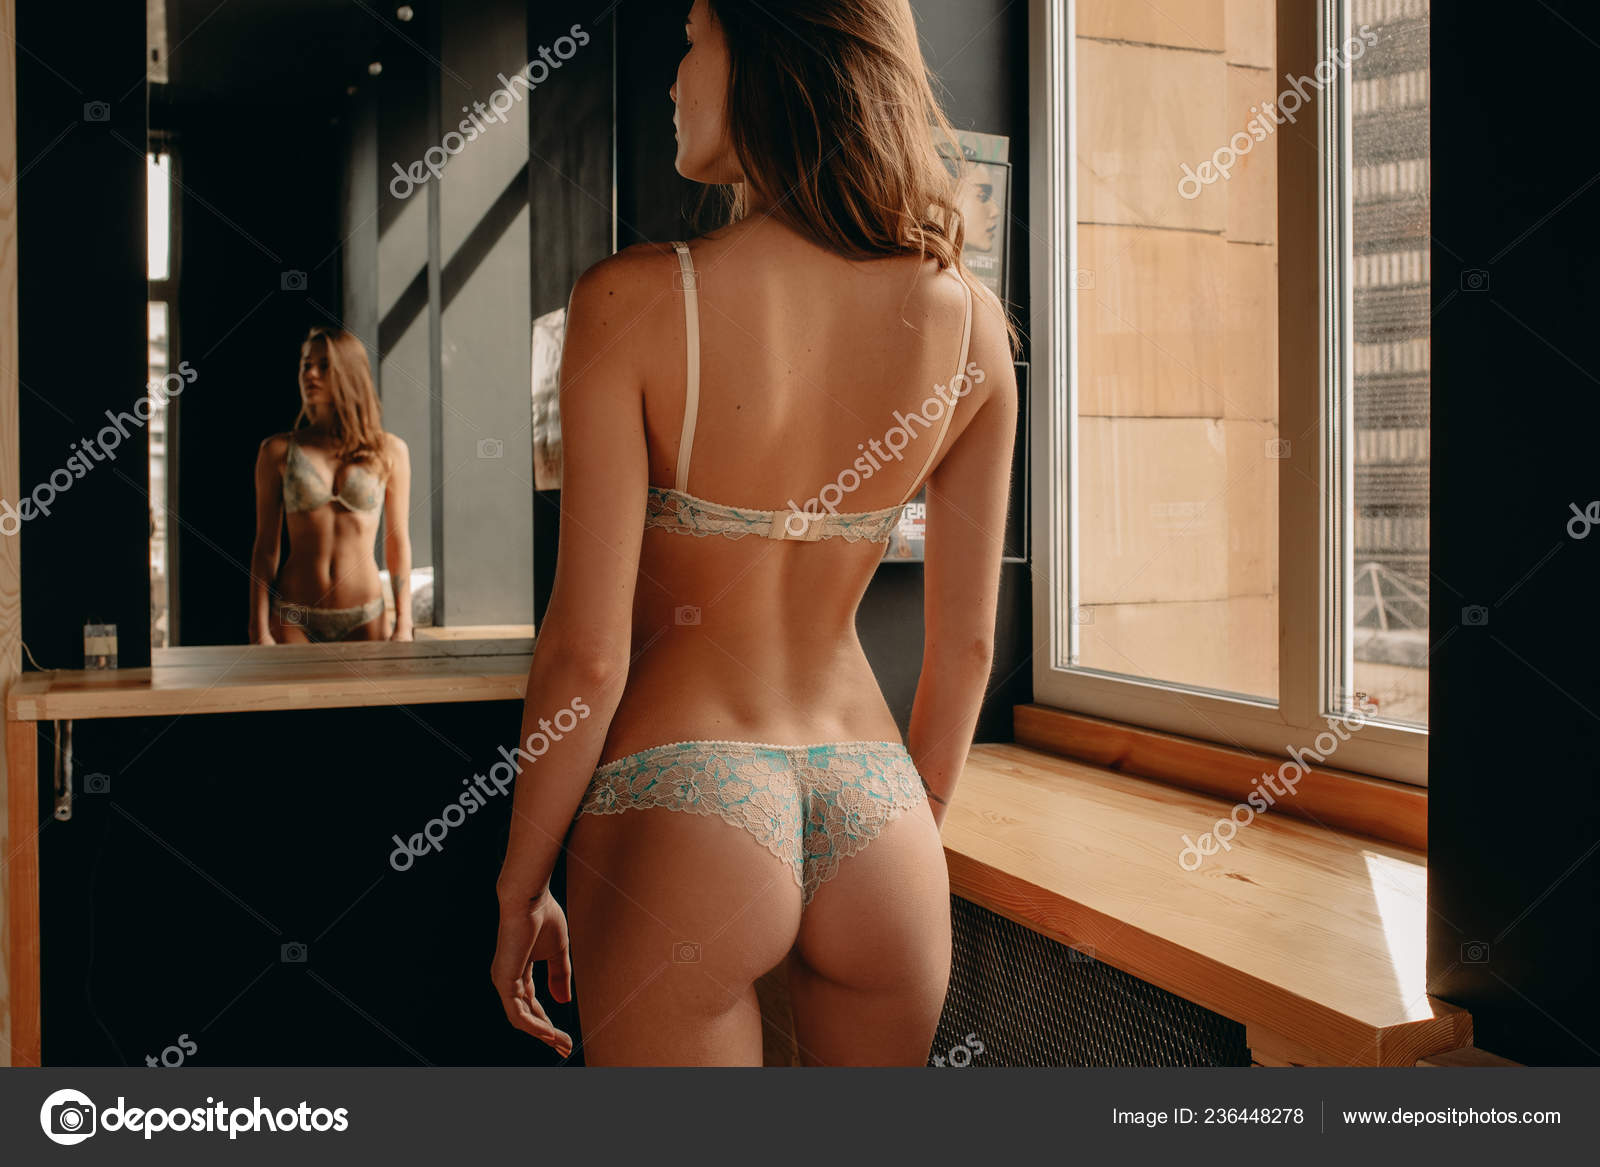 Naked woman in bathroom standing in front of mirror